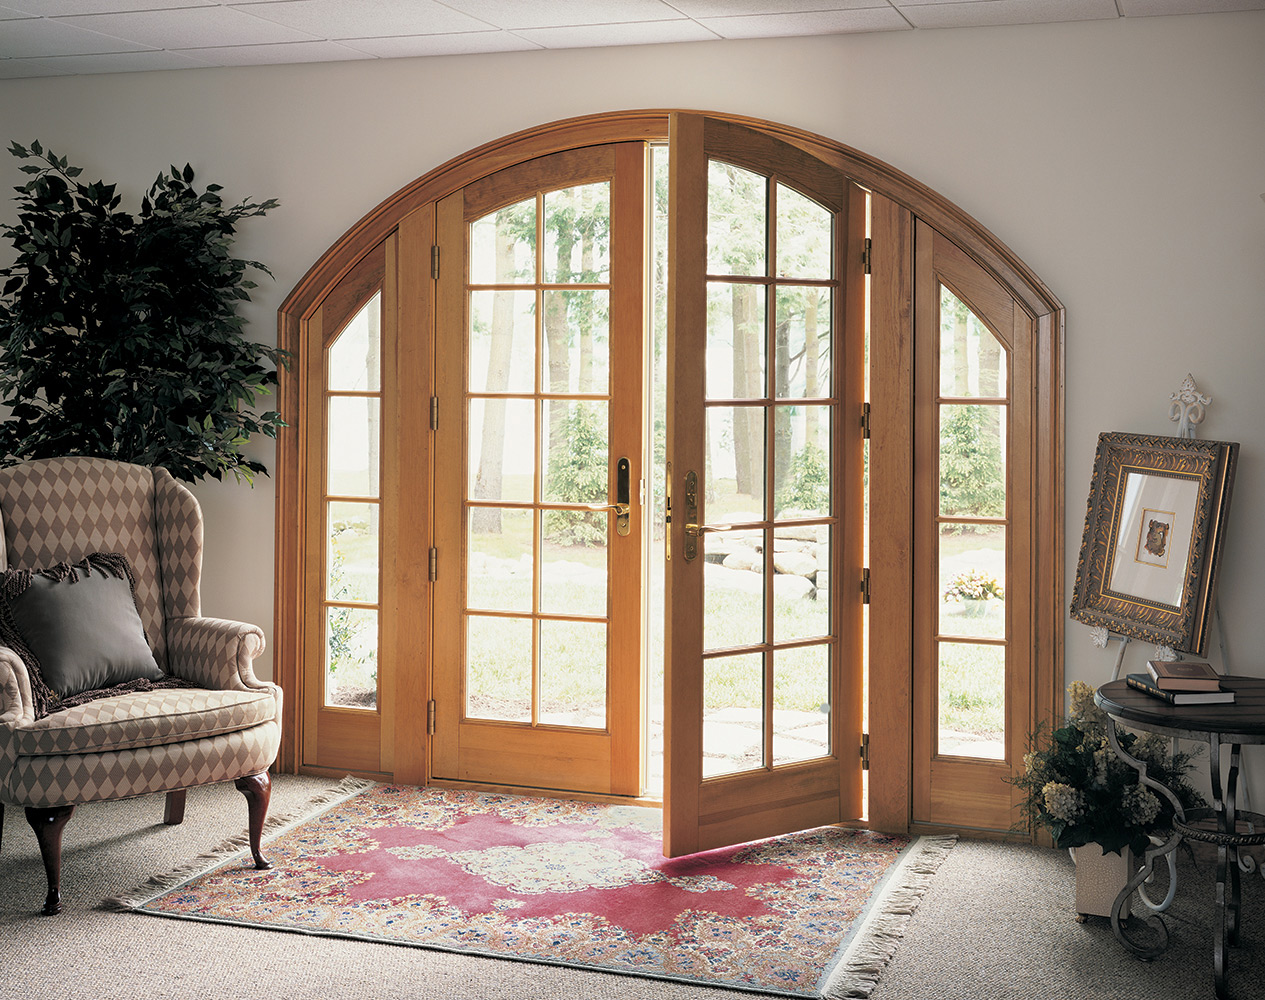 Replacement patio doors wisconsin hometowne windows for Patio door styles